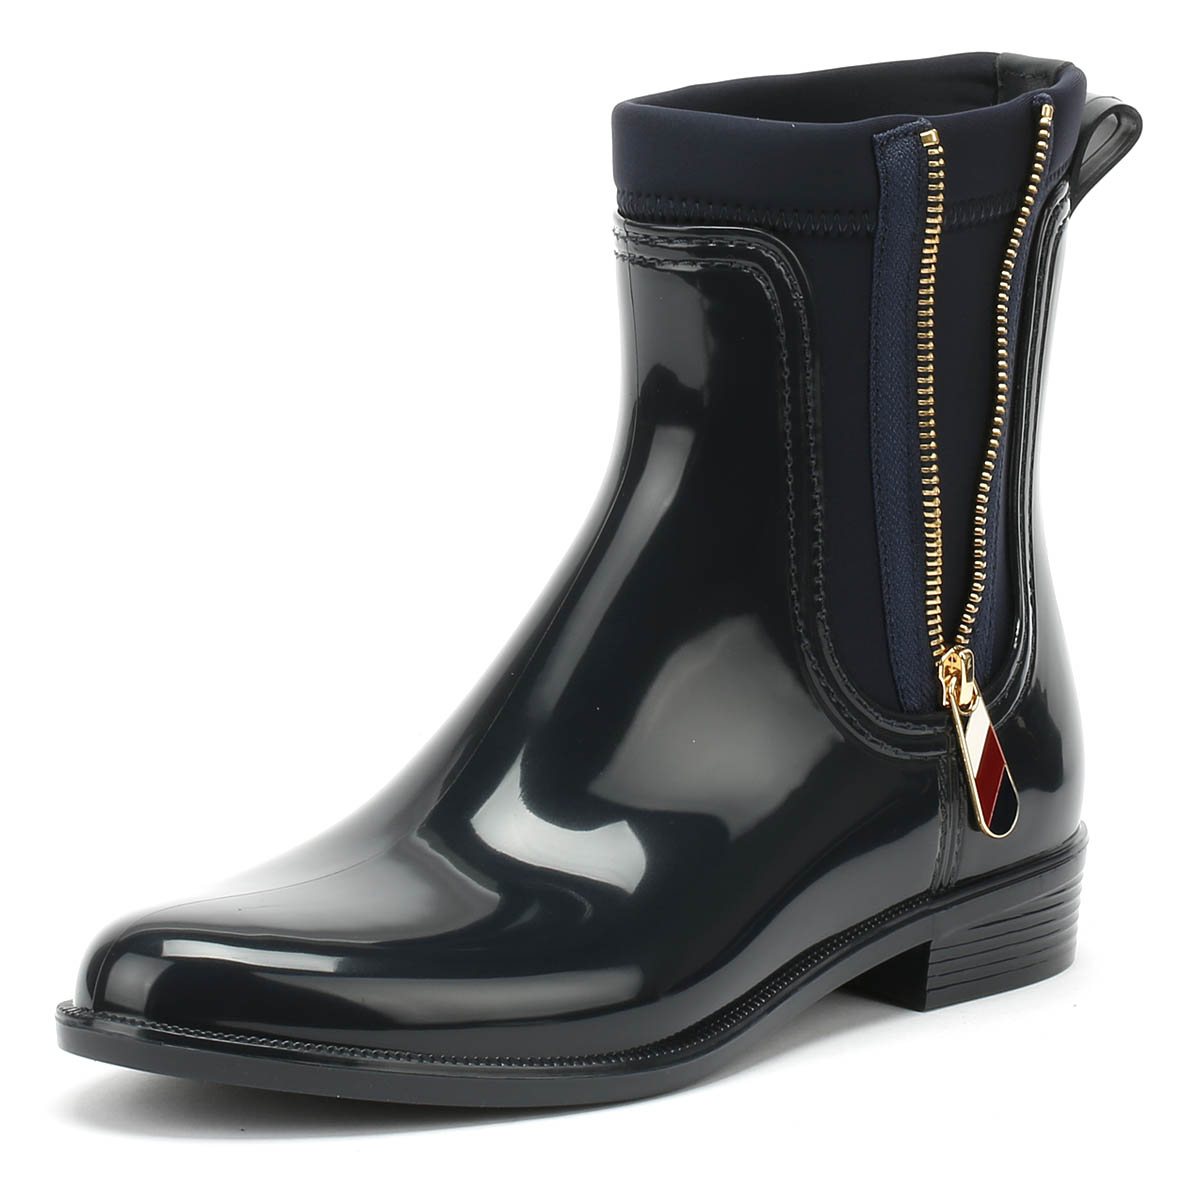 613190cce6c02c Details about Tommy Hilfiger Womens Rain Boots Midnight Navy Material Mix  Casual Ankle Shoes